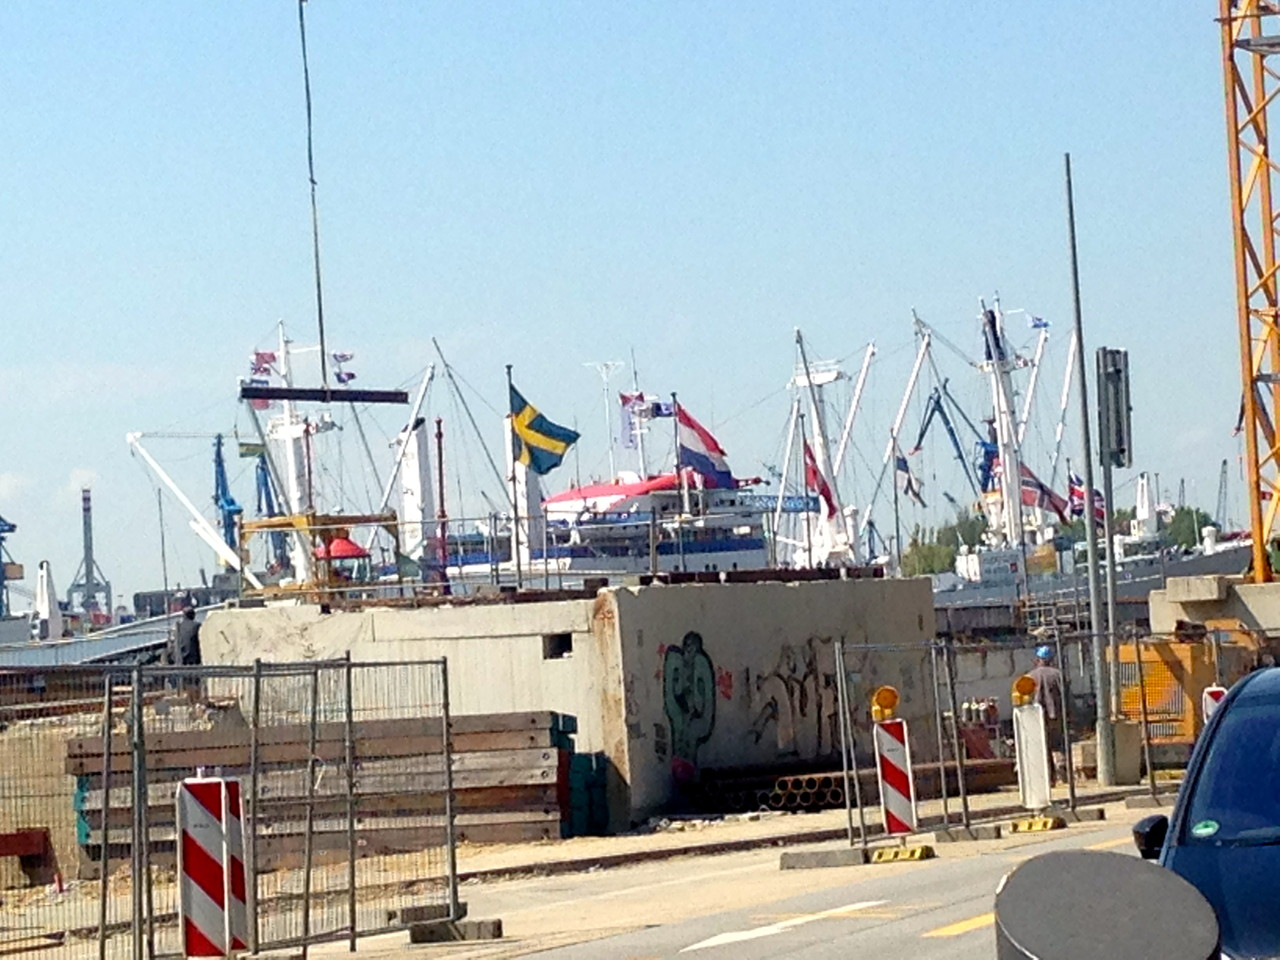 even the swedish and scandinavian flags are hissed in the Hamburg harbor